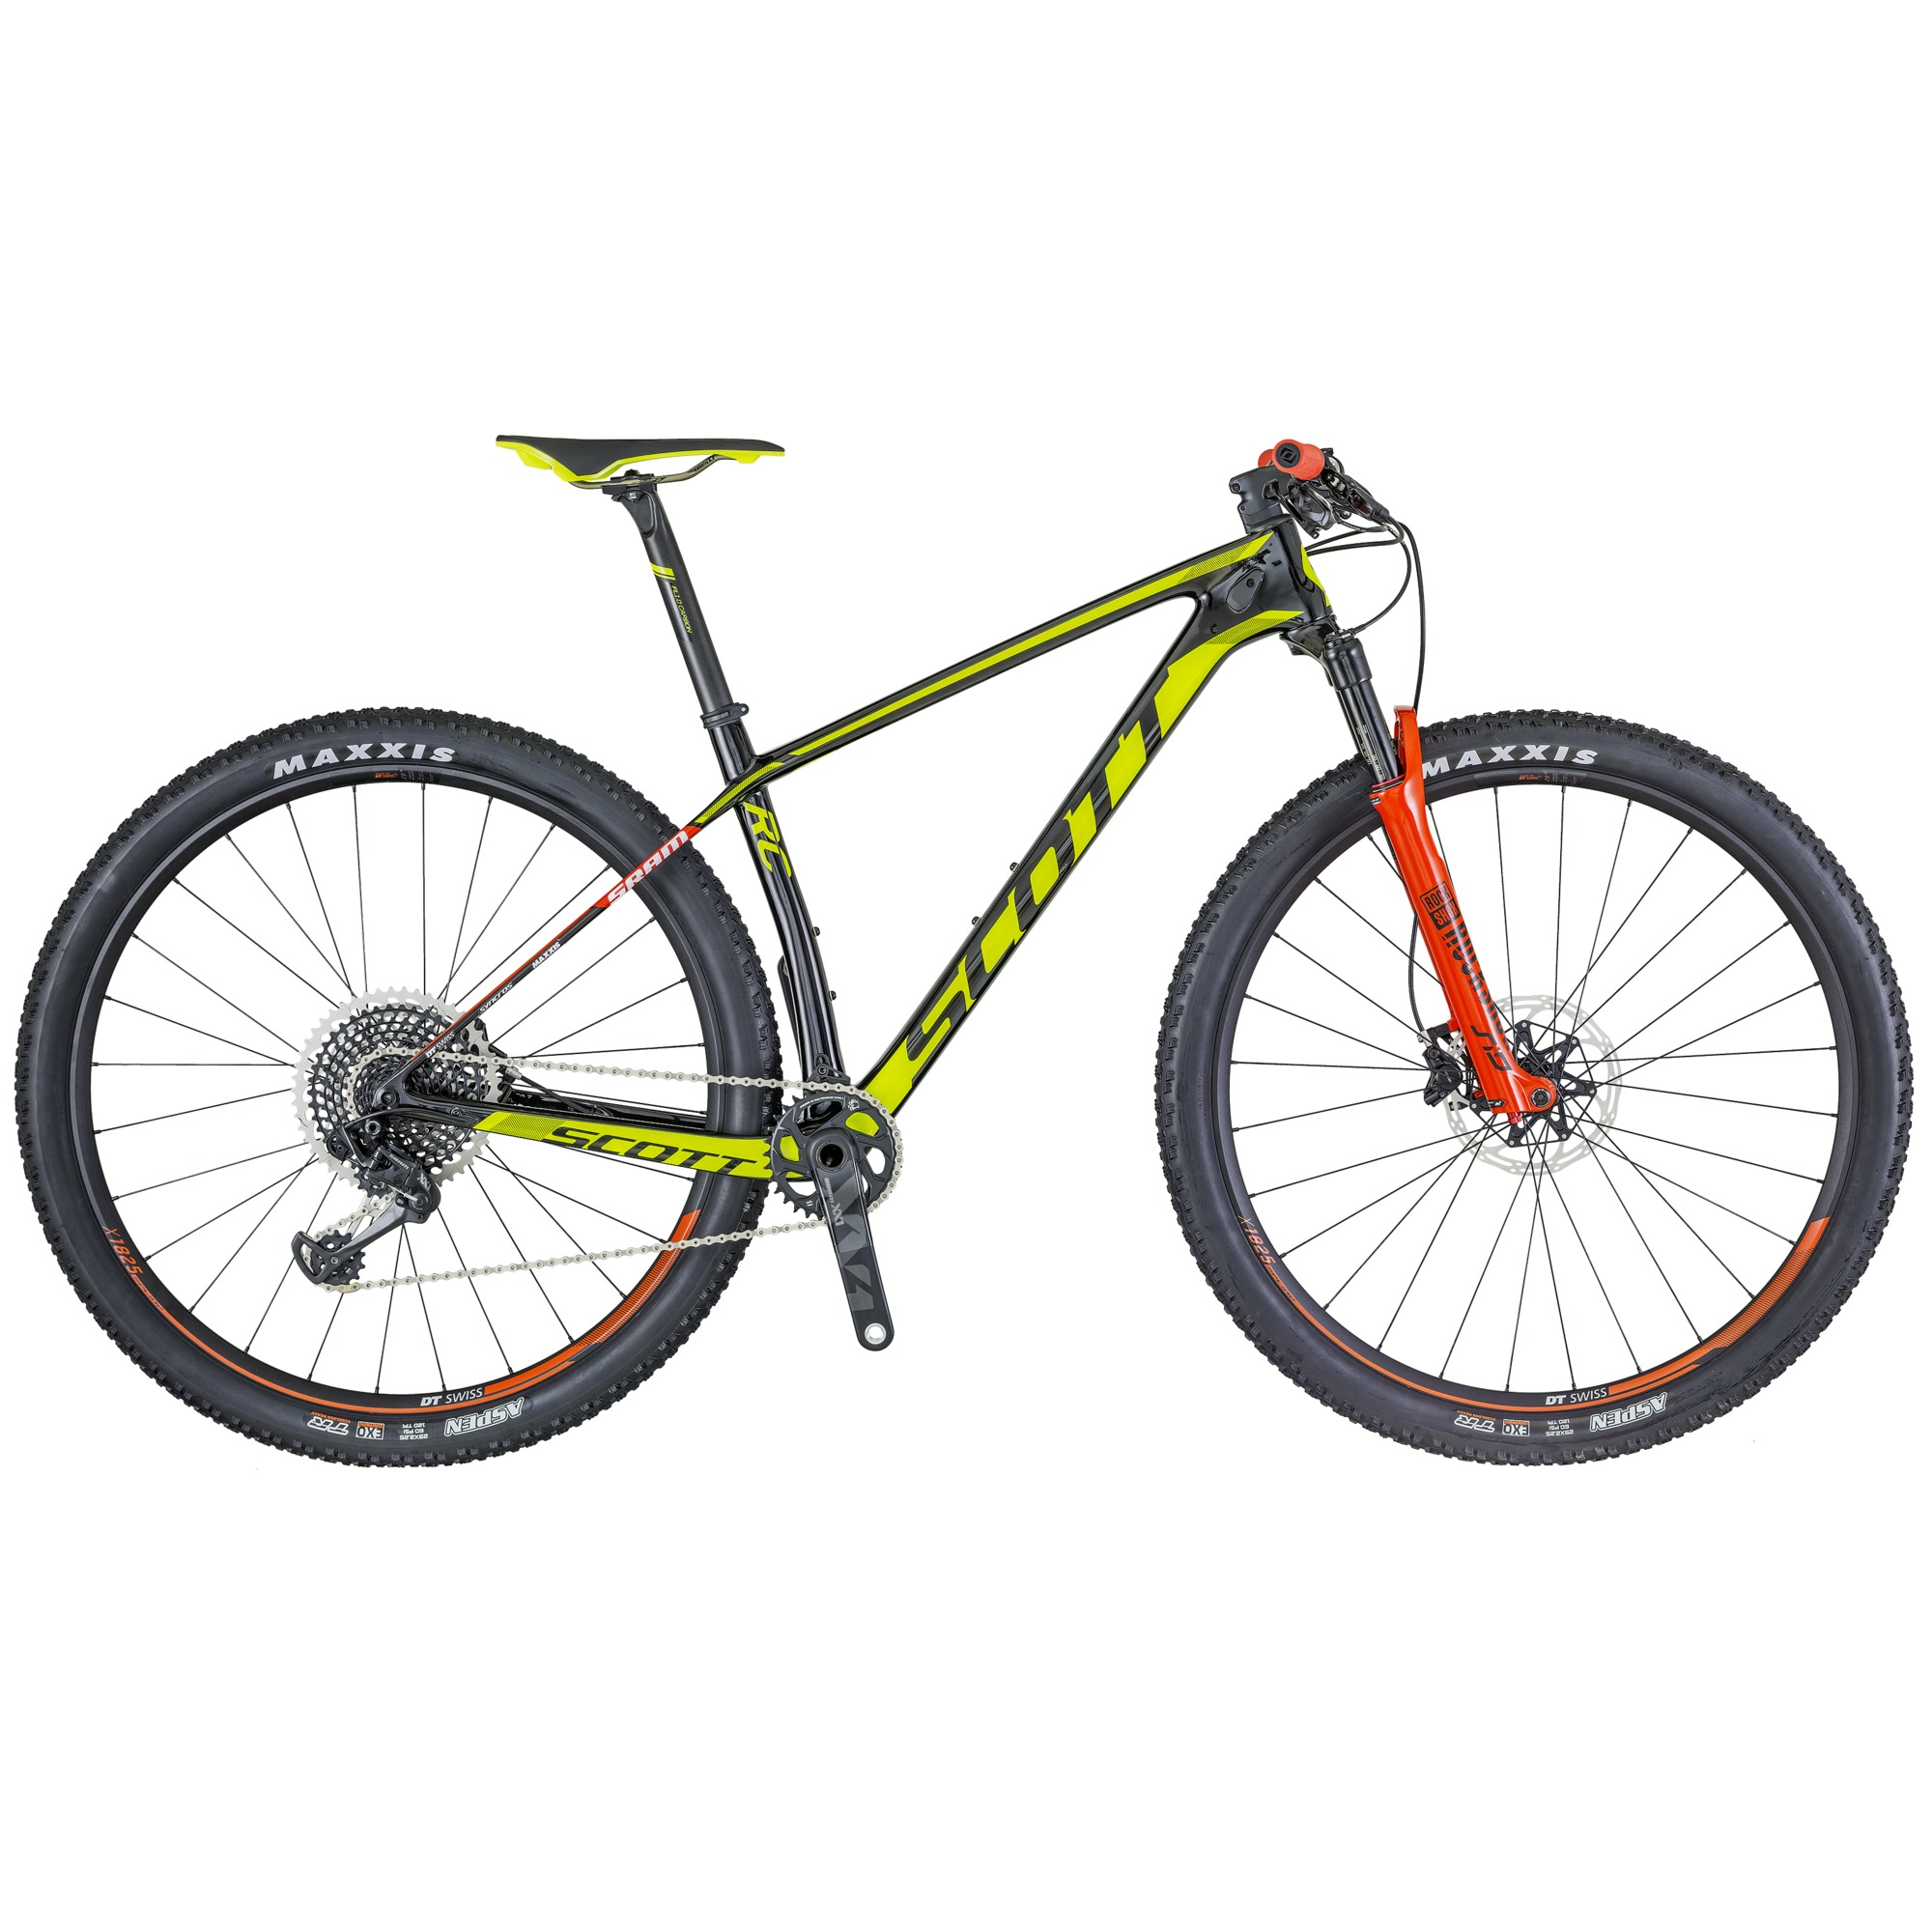 SCOTT SCALE RC 900 WORLD CUP BIKE Image